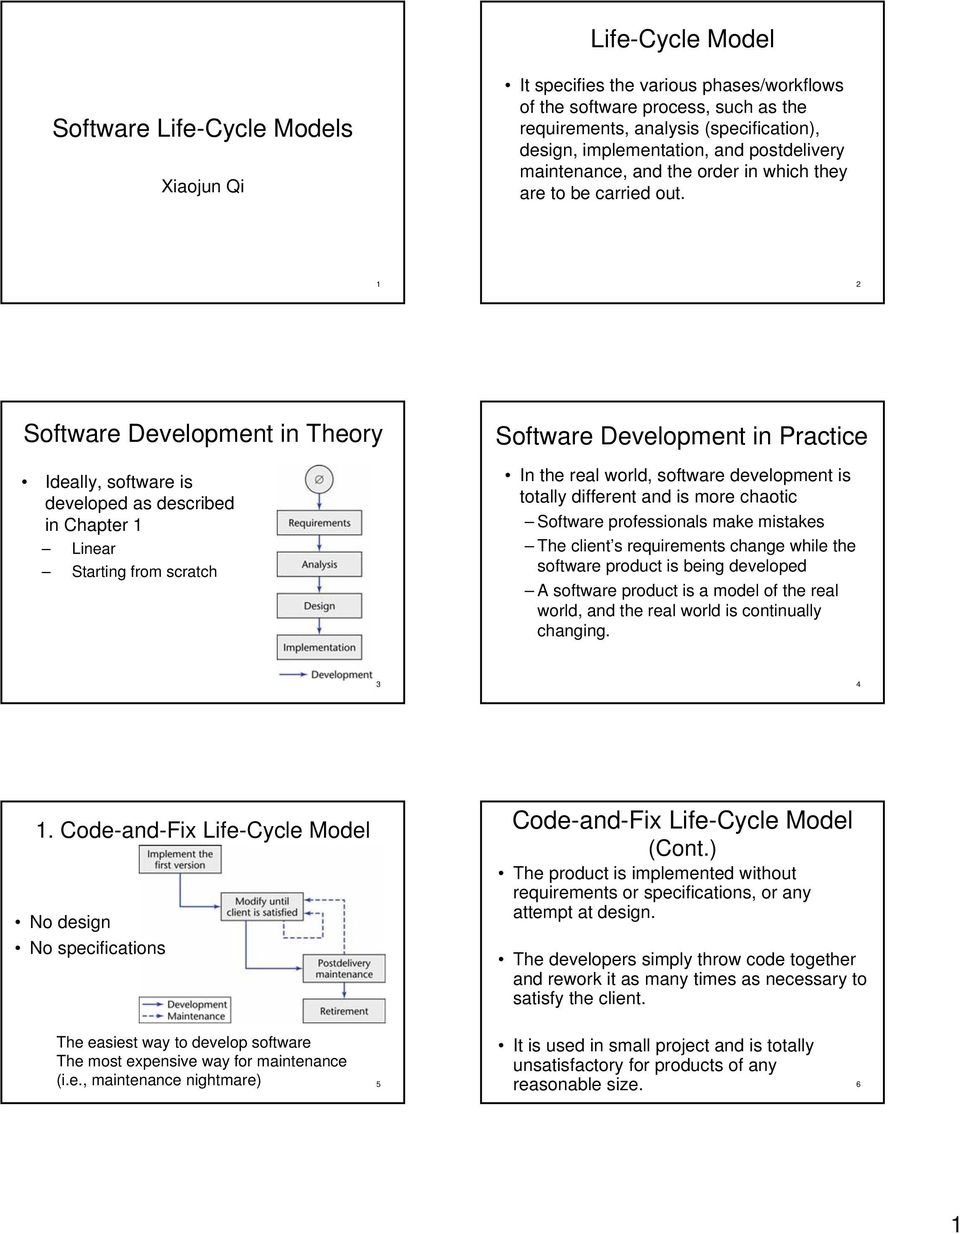 1 2 Software Development in Theory Ideally, software is developed as described in Chapter 1 Linear Starting from scratch Software Development in Practice In the real world, software development is